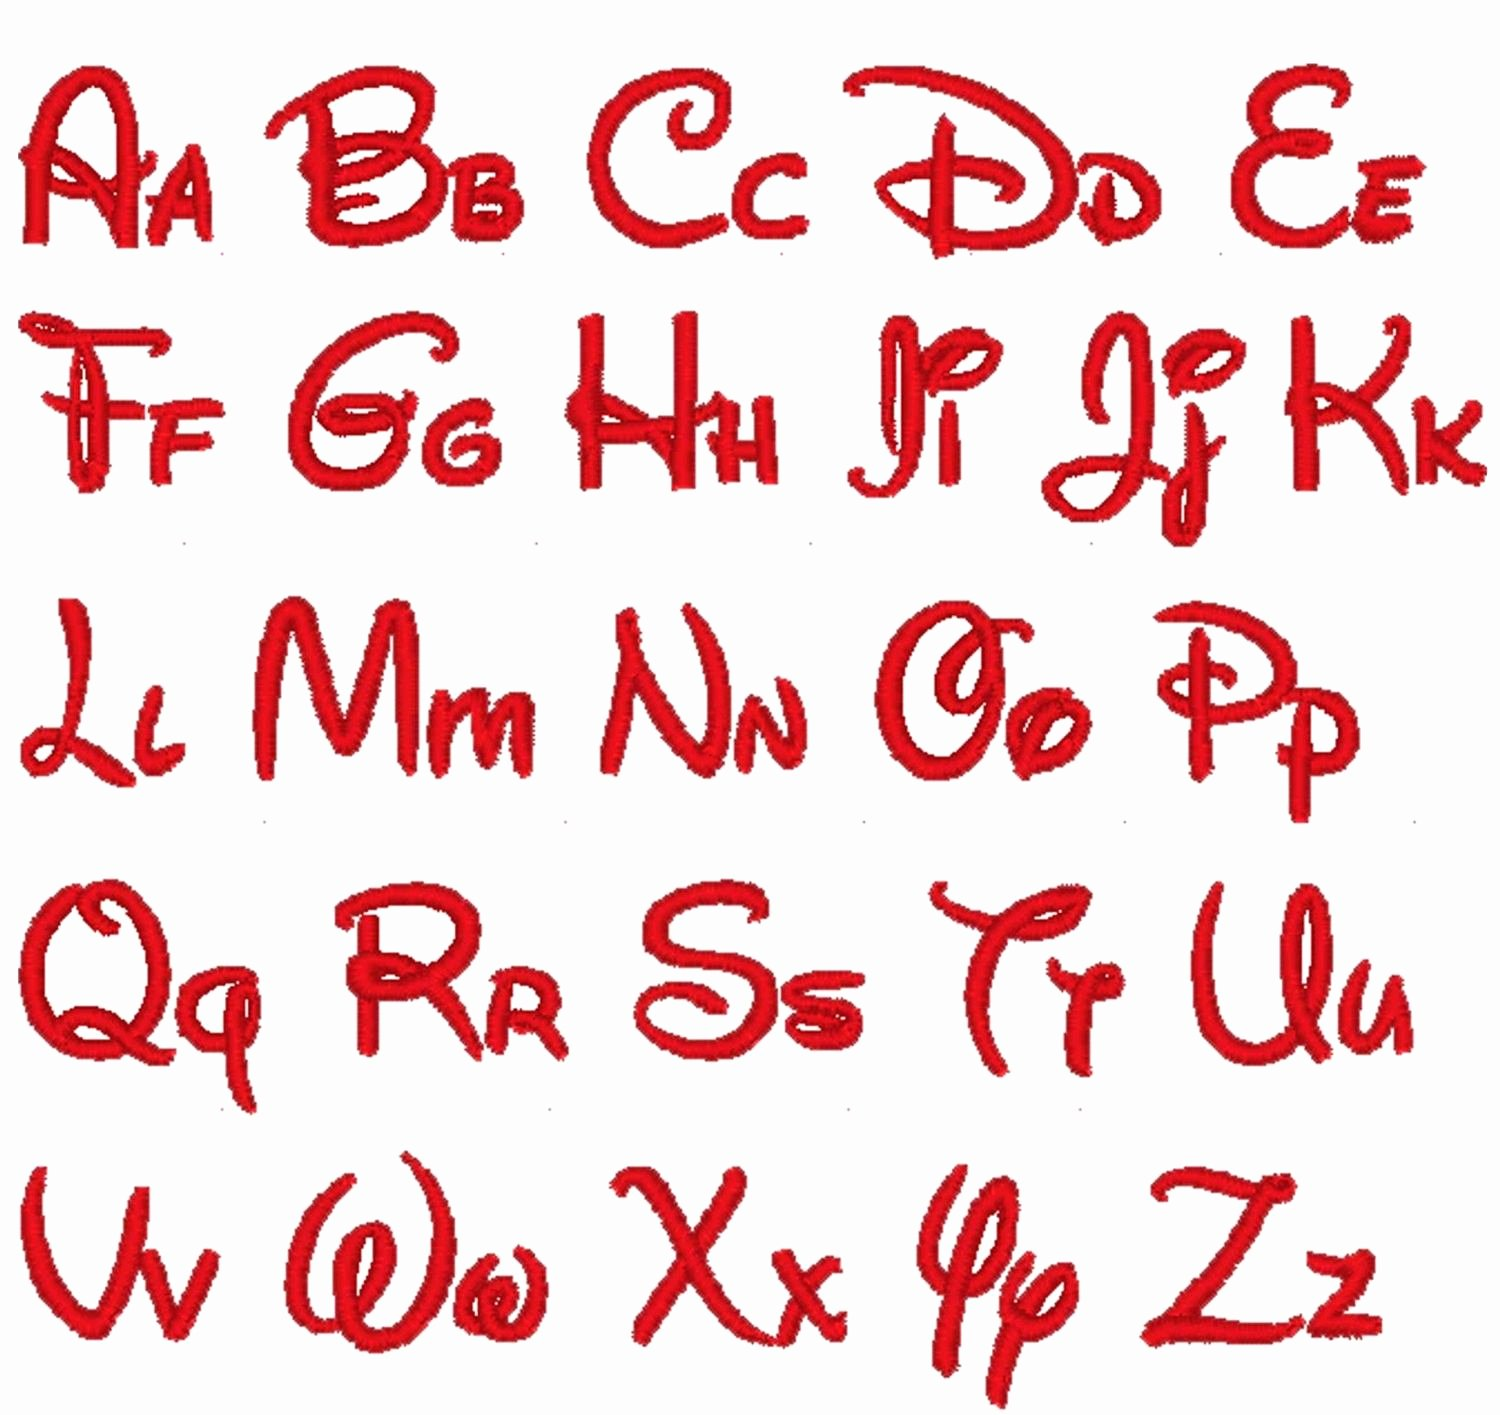 Mickey Mouse Letters Font Best Of 14 Lovely Disney Letter Stencils for All